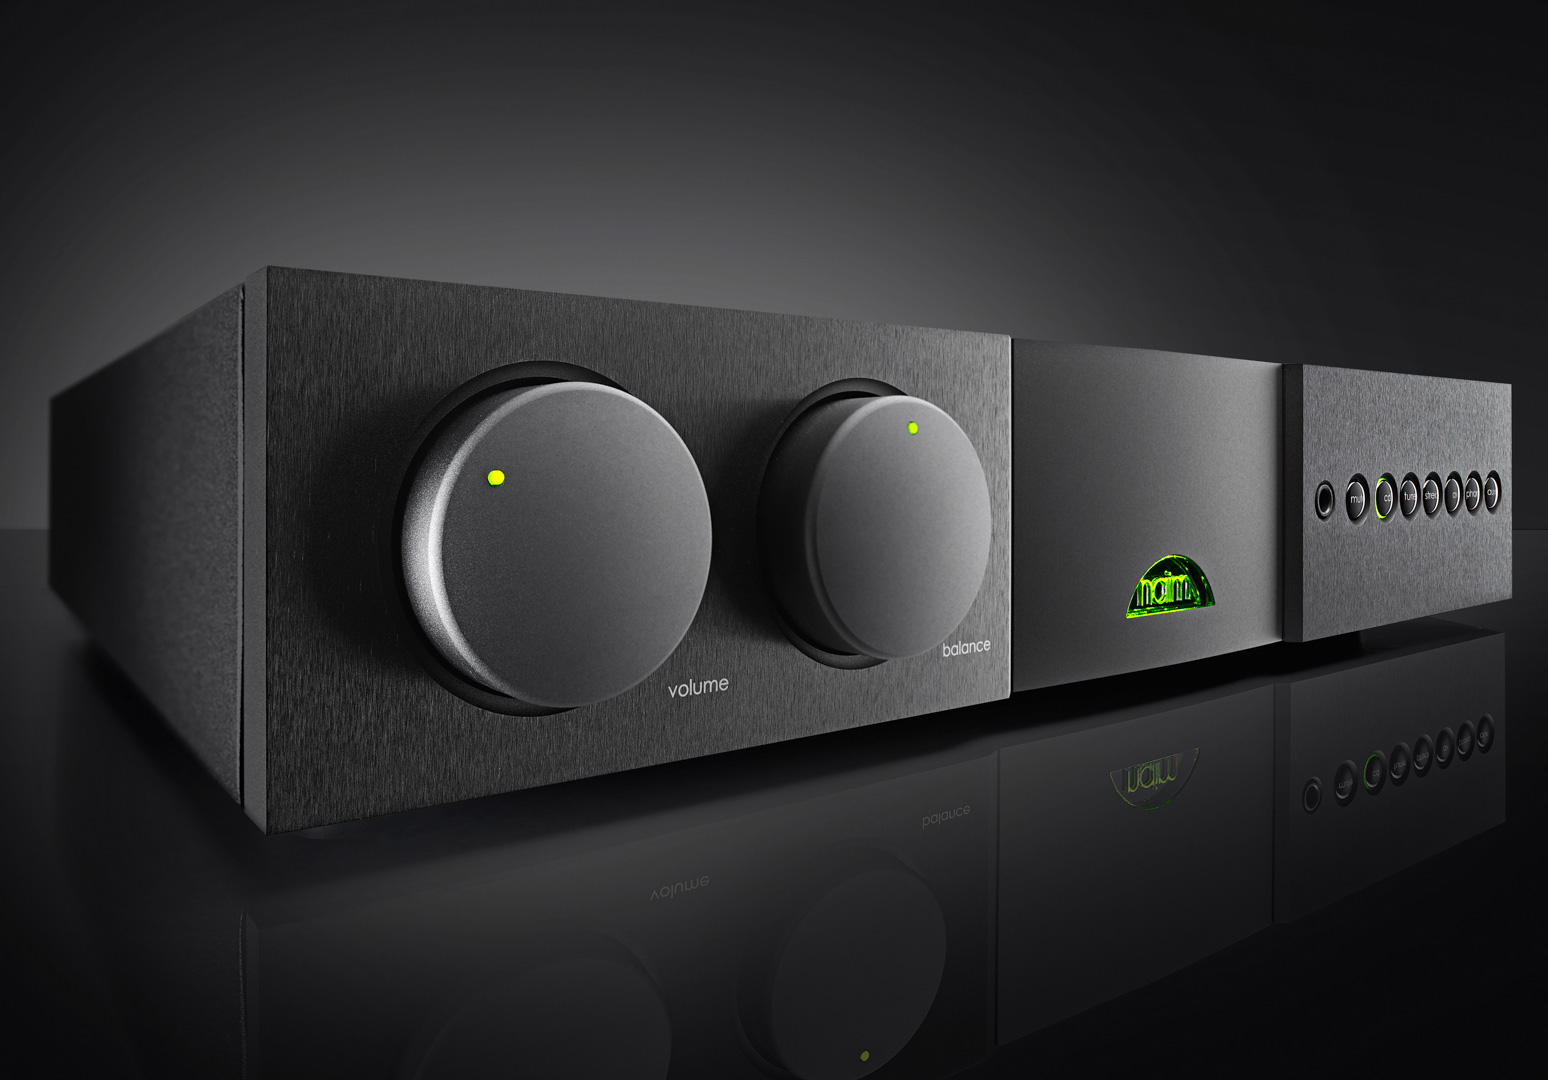 NAIM Introduces a Vinyl-Ready Variant of its Supernait 3 Amplifier at werd.com